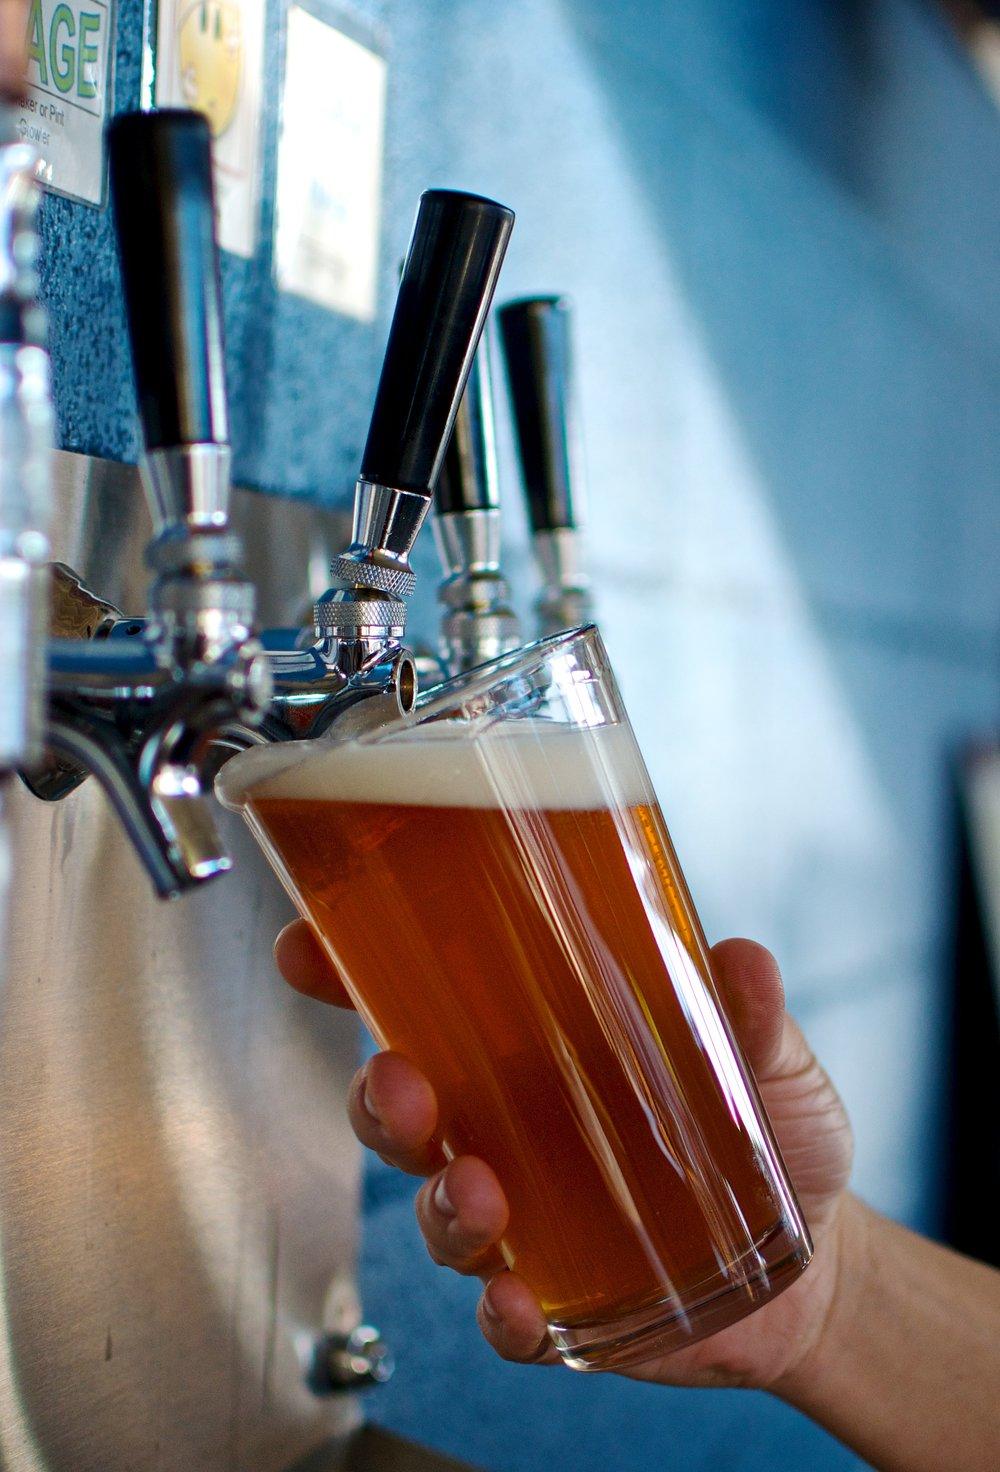 Drink Us - We've hand crafted some of the finest beers around. Come see what we have to offer.